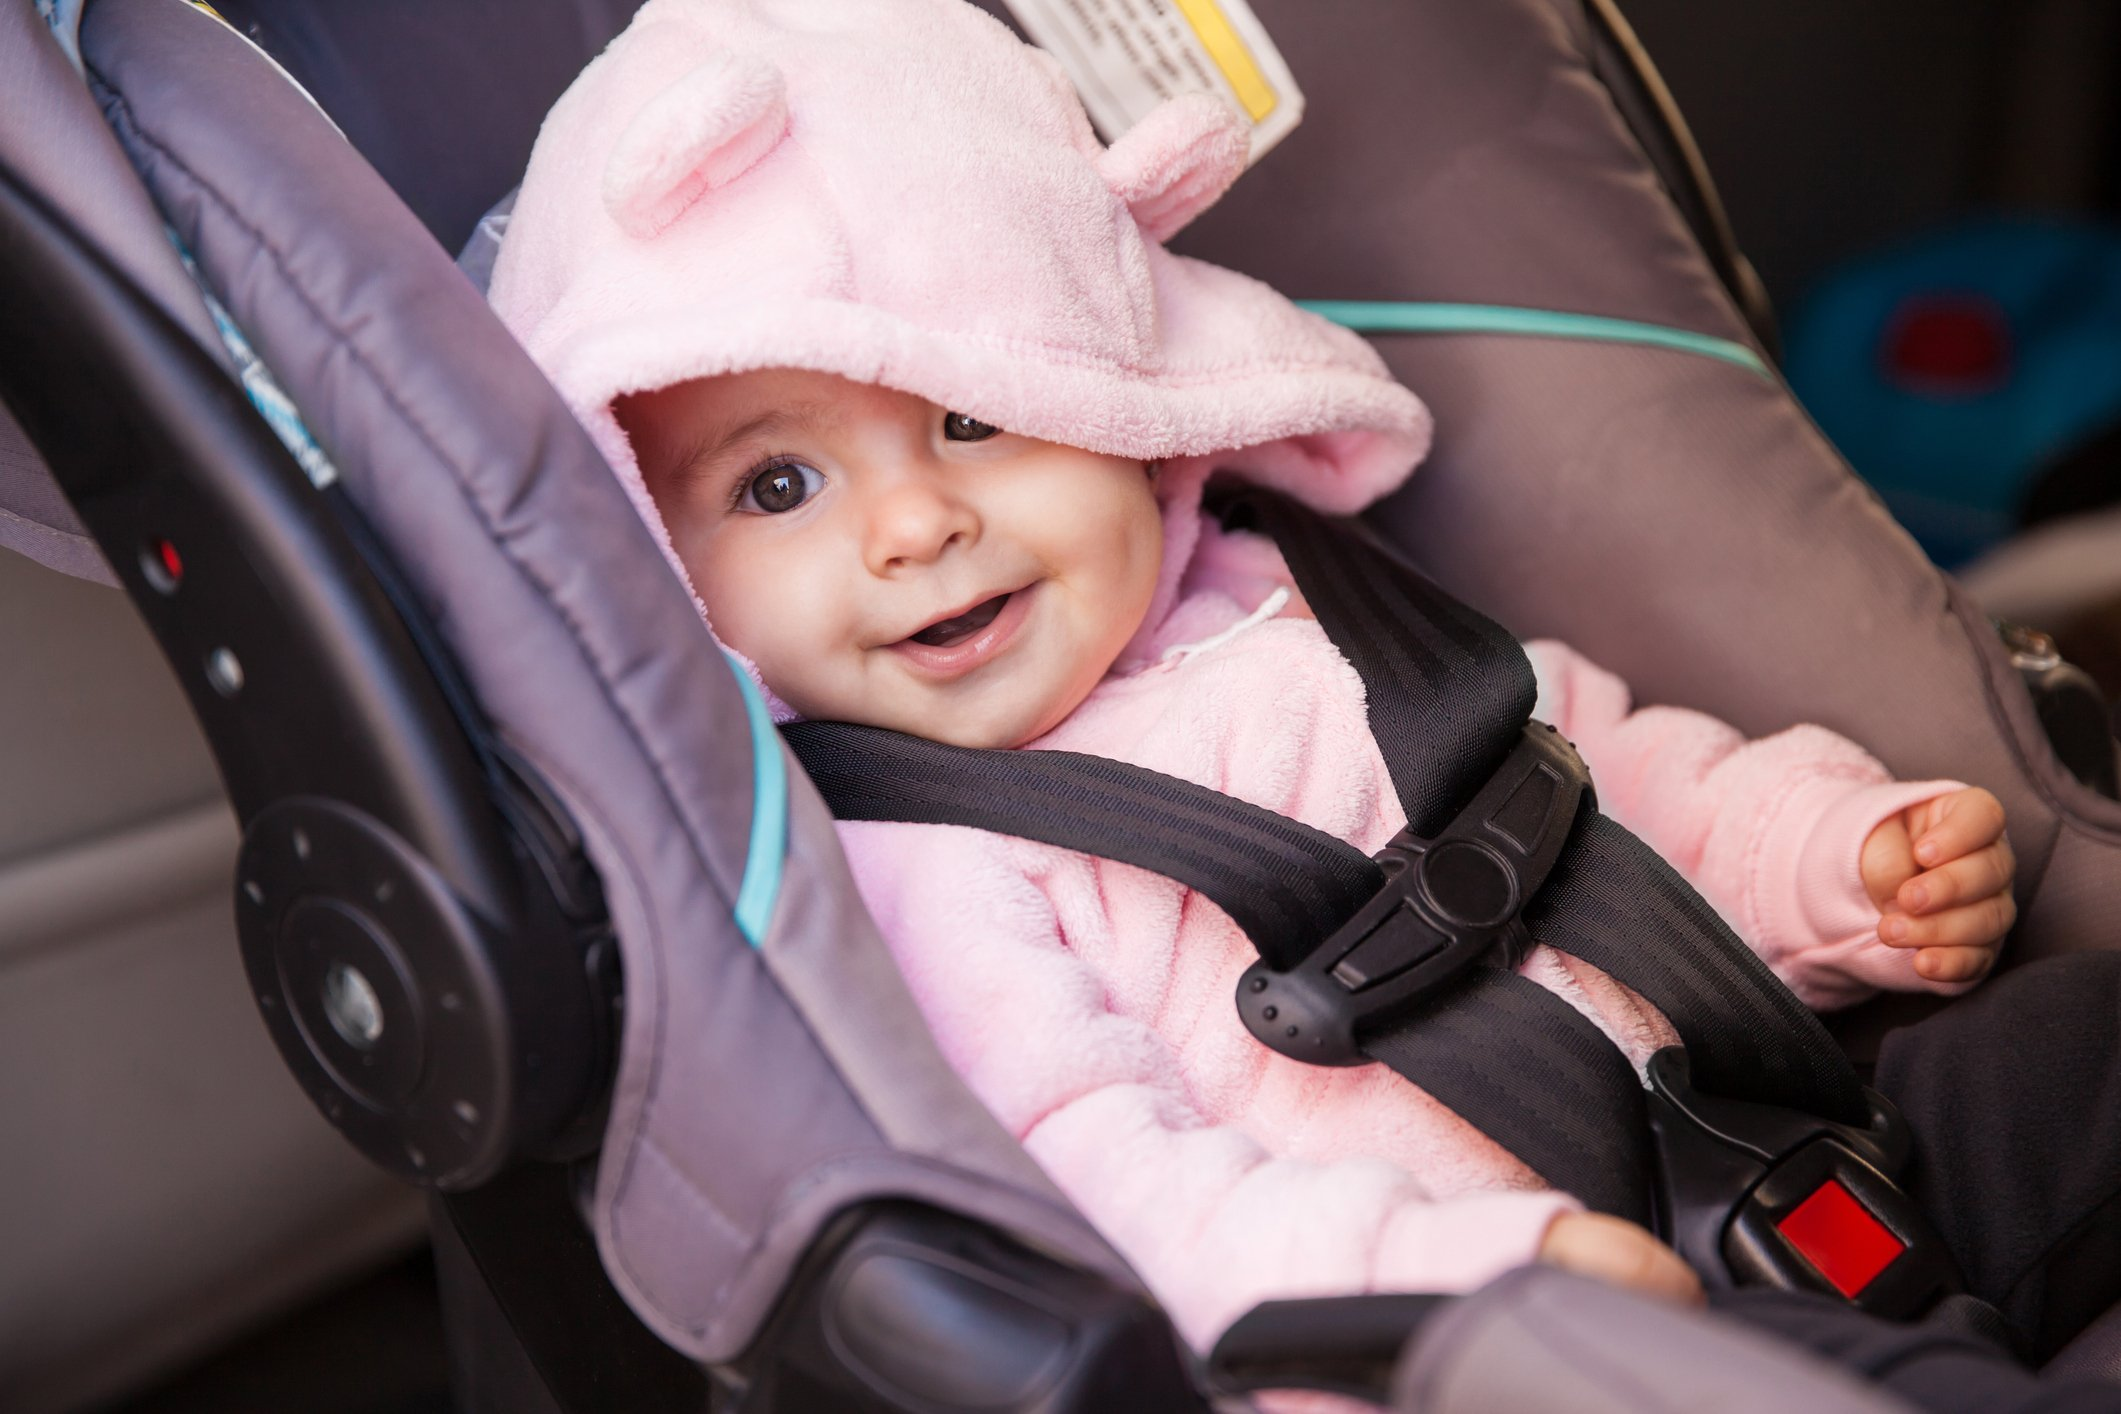 An infant is safely buckled into her car seat.